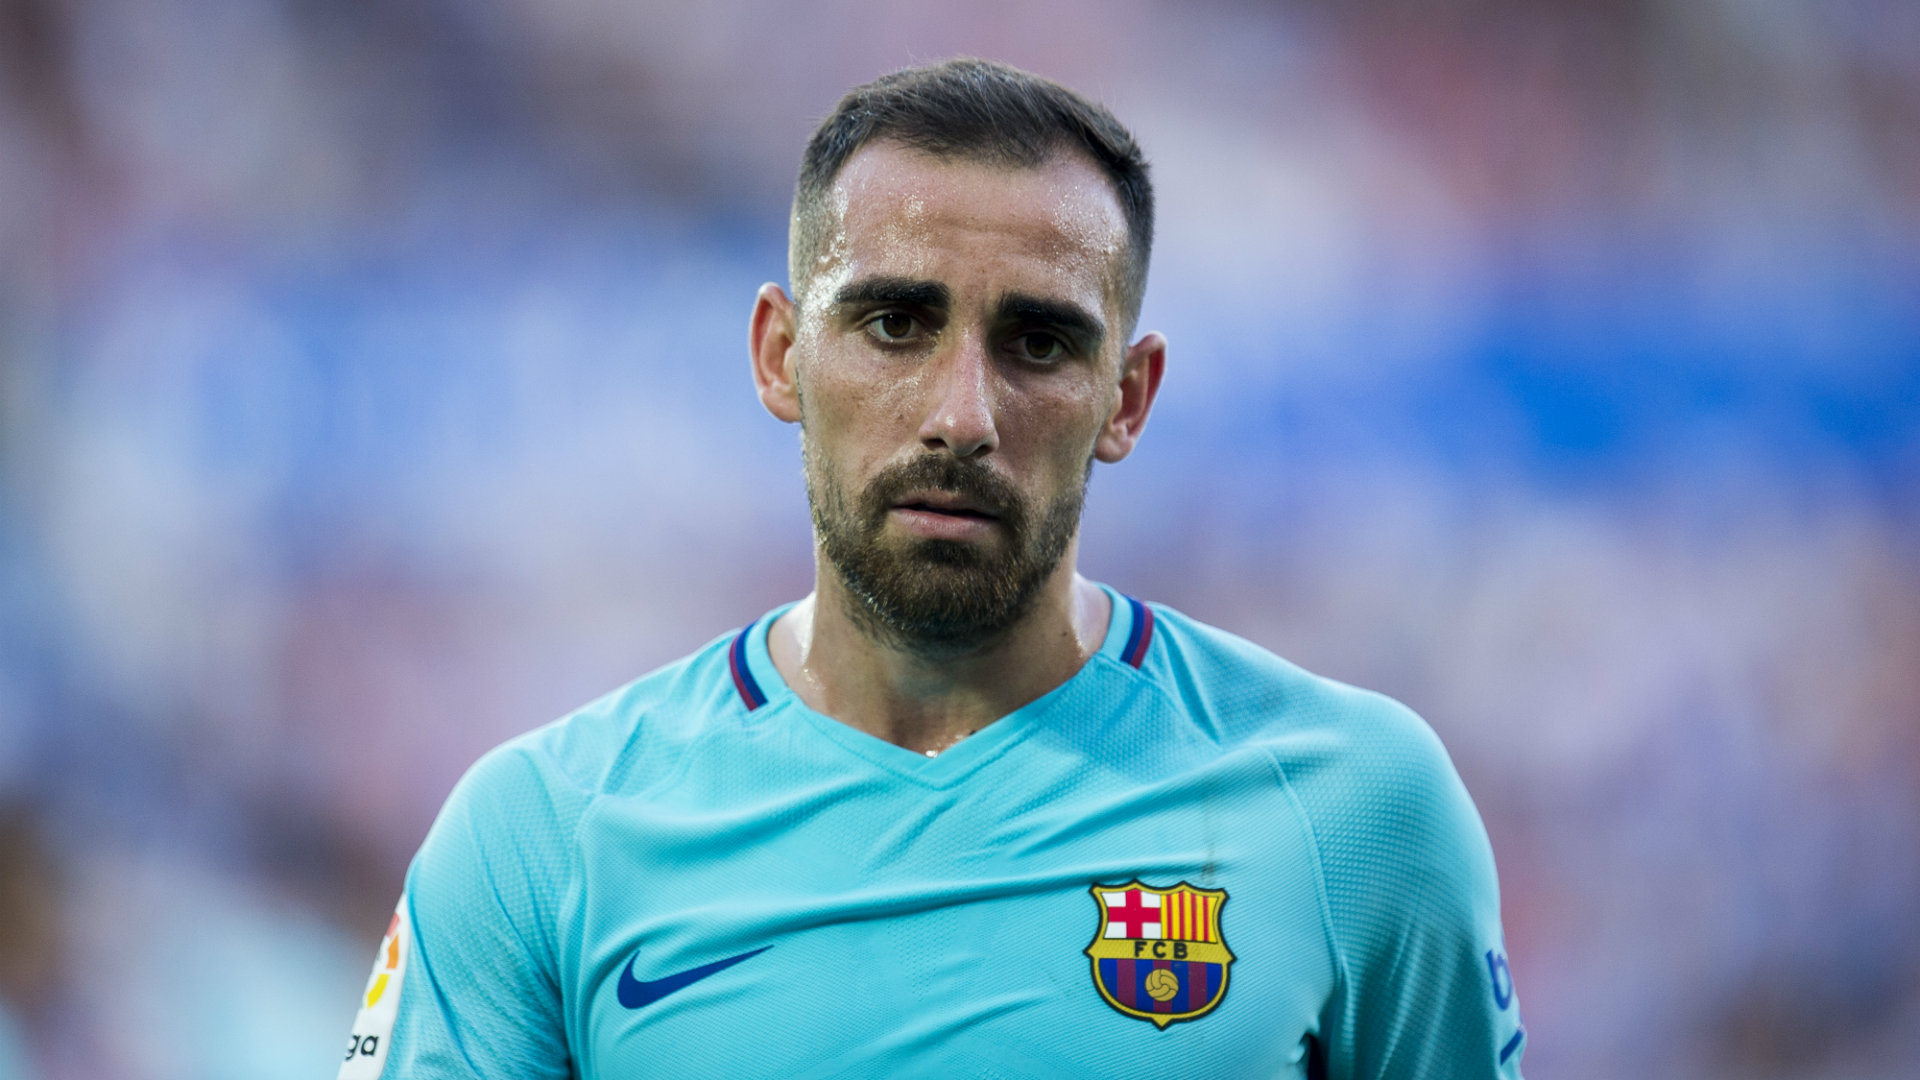 Paco Alcacer Barcelona 2017/18